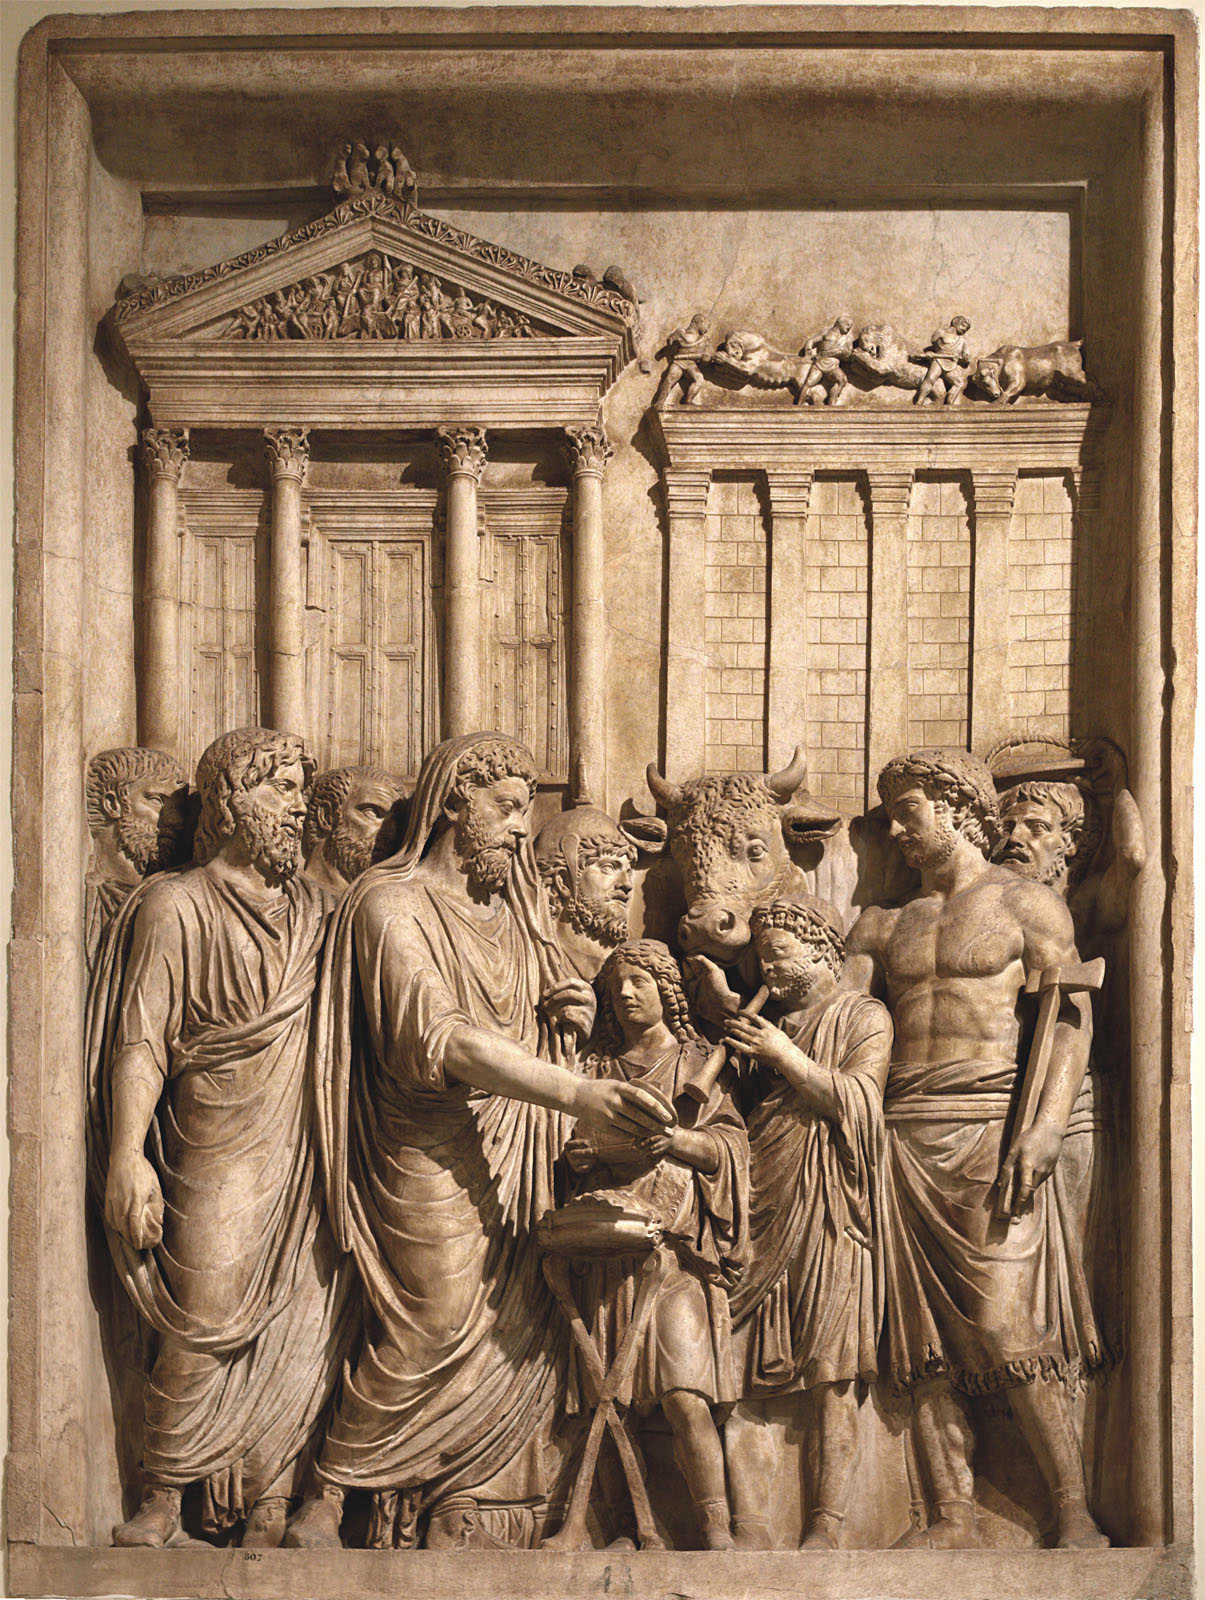 Sacrifice to Capitoline Jupiter. Relief panel from a triumphal arch (presumably). Marble. 177—180 CE.  Inv. No. MC 807. Rome, Capitoline Museums, Palazzo dei Conservatori, Main staircase